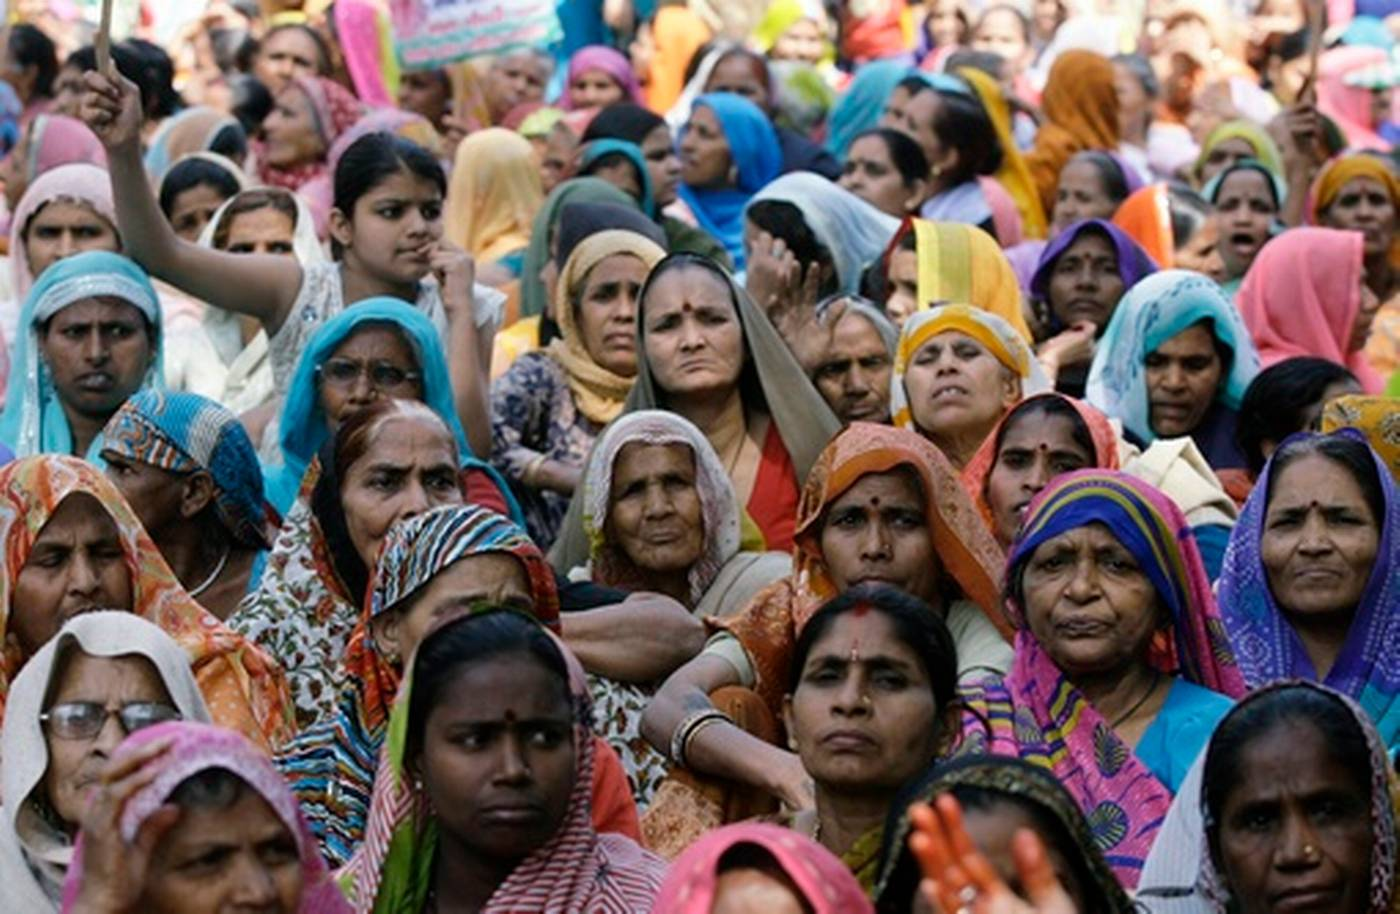 demerits of women reservation in india Although india boasts many eminent women and was once led by a powerful woman prime minister, indira gandhi, and while goddesses are extensively worshiped in hindu rituals, statistics reveal that girls are, in fact, disadvantaged in india.